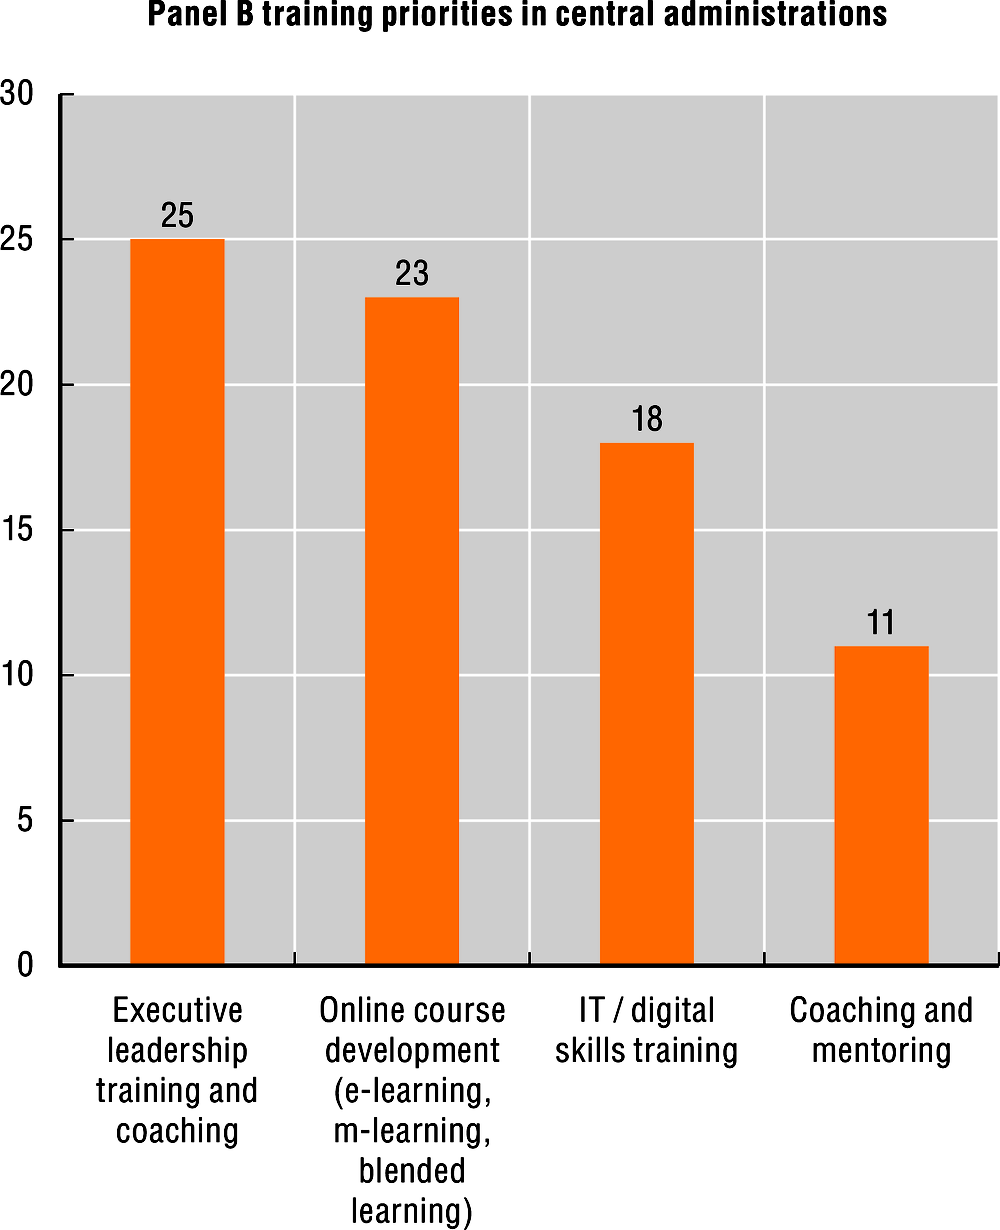 Figure 1.6. Learning and development initiatives and training priorities in public administrations, 2019